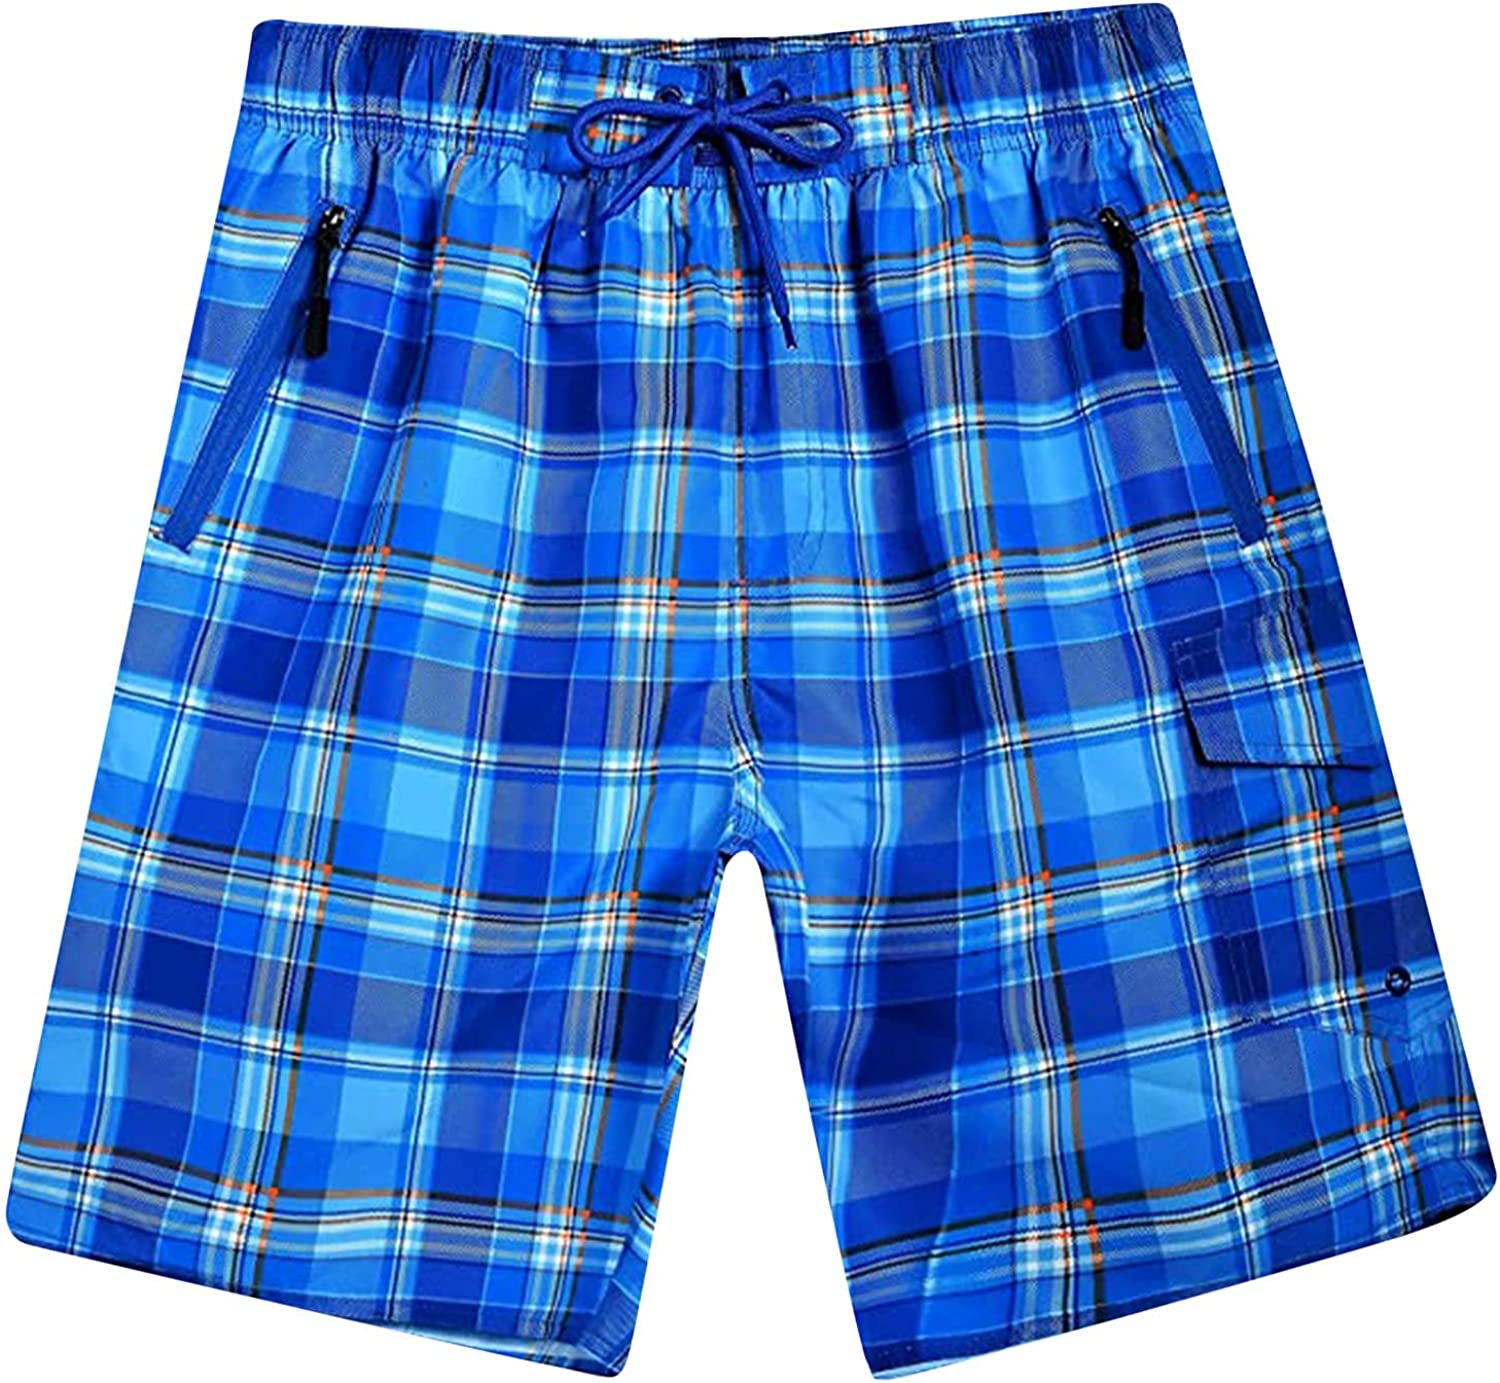 Mens Summer Swimming Trunks Stylish Plaid Printed Pattern Casual Hawaiian Shorts Relaxed Fit Lounge Beach Shorts